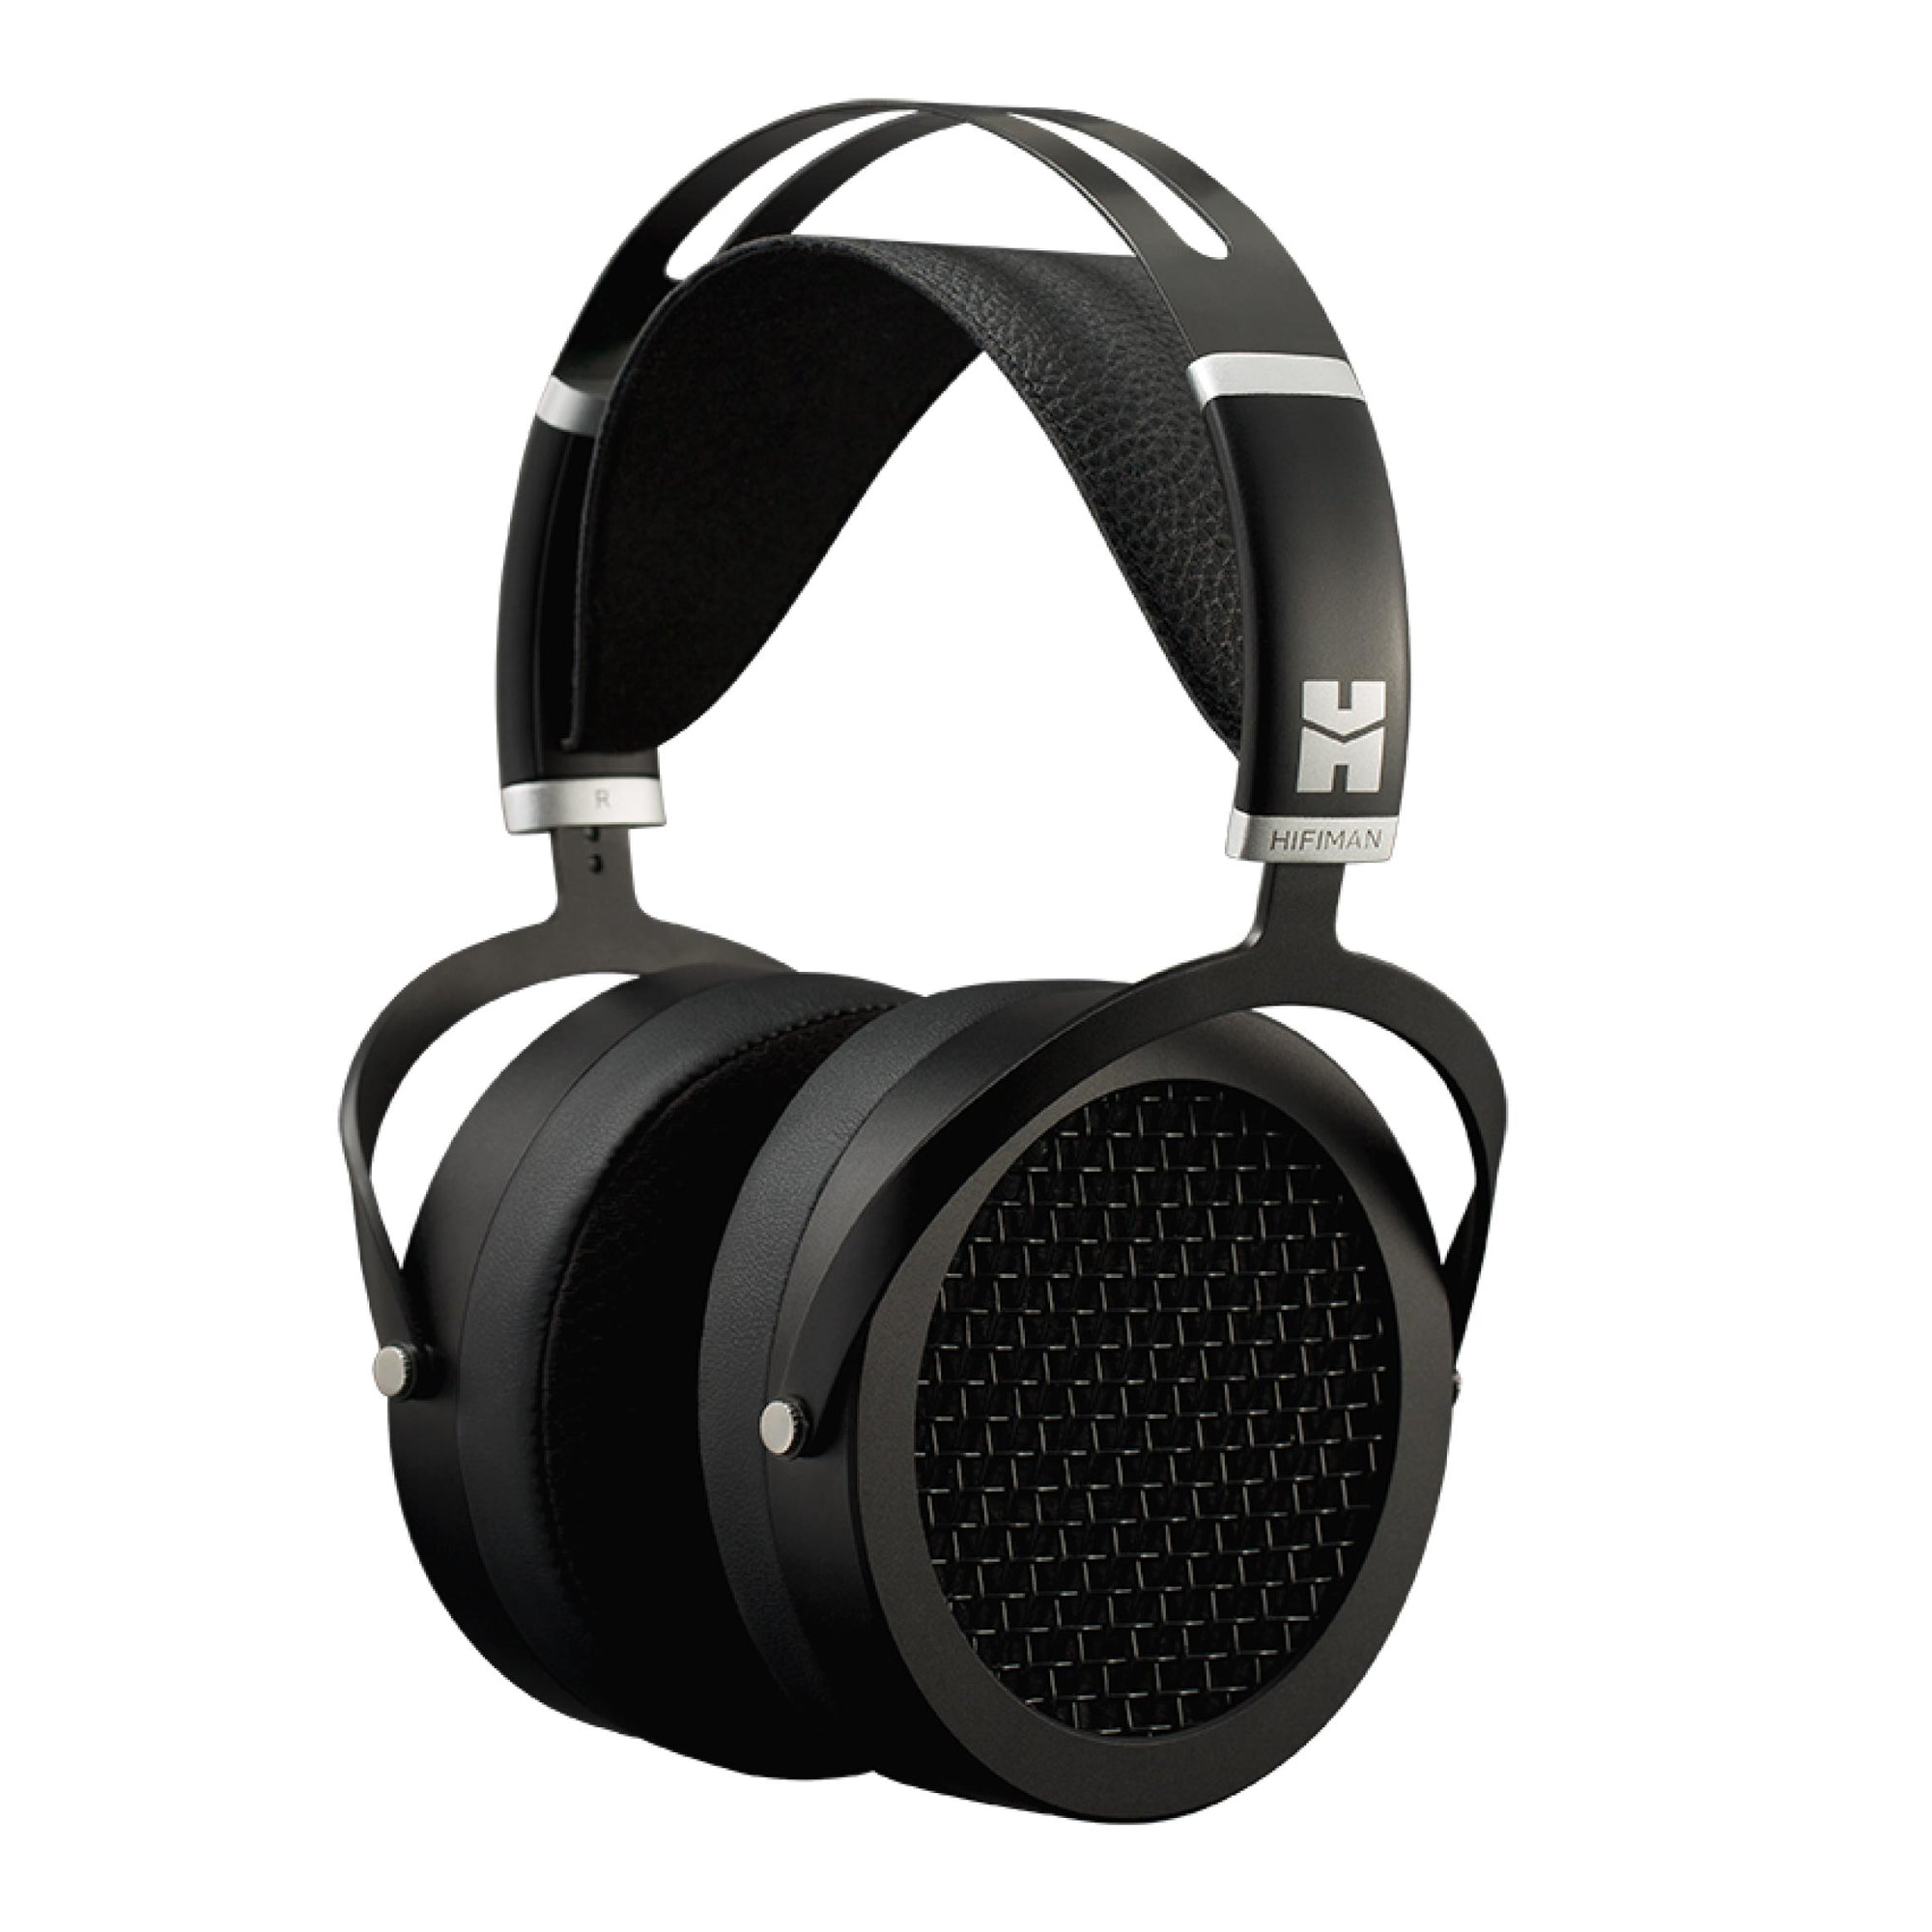 HIFIMAN SUNDARA Over-ear Full-size Planar Magnetic Headphones - Gears For Ears